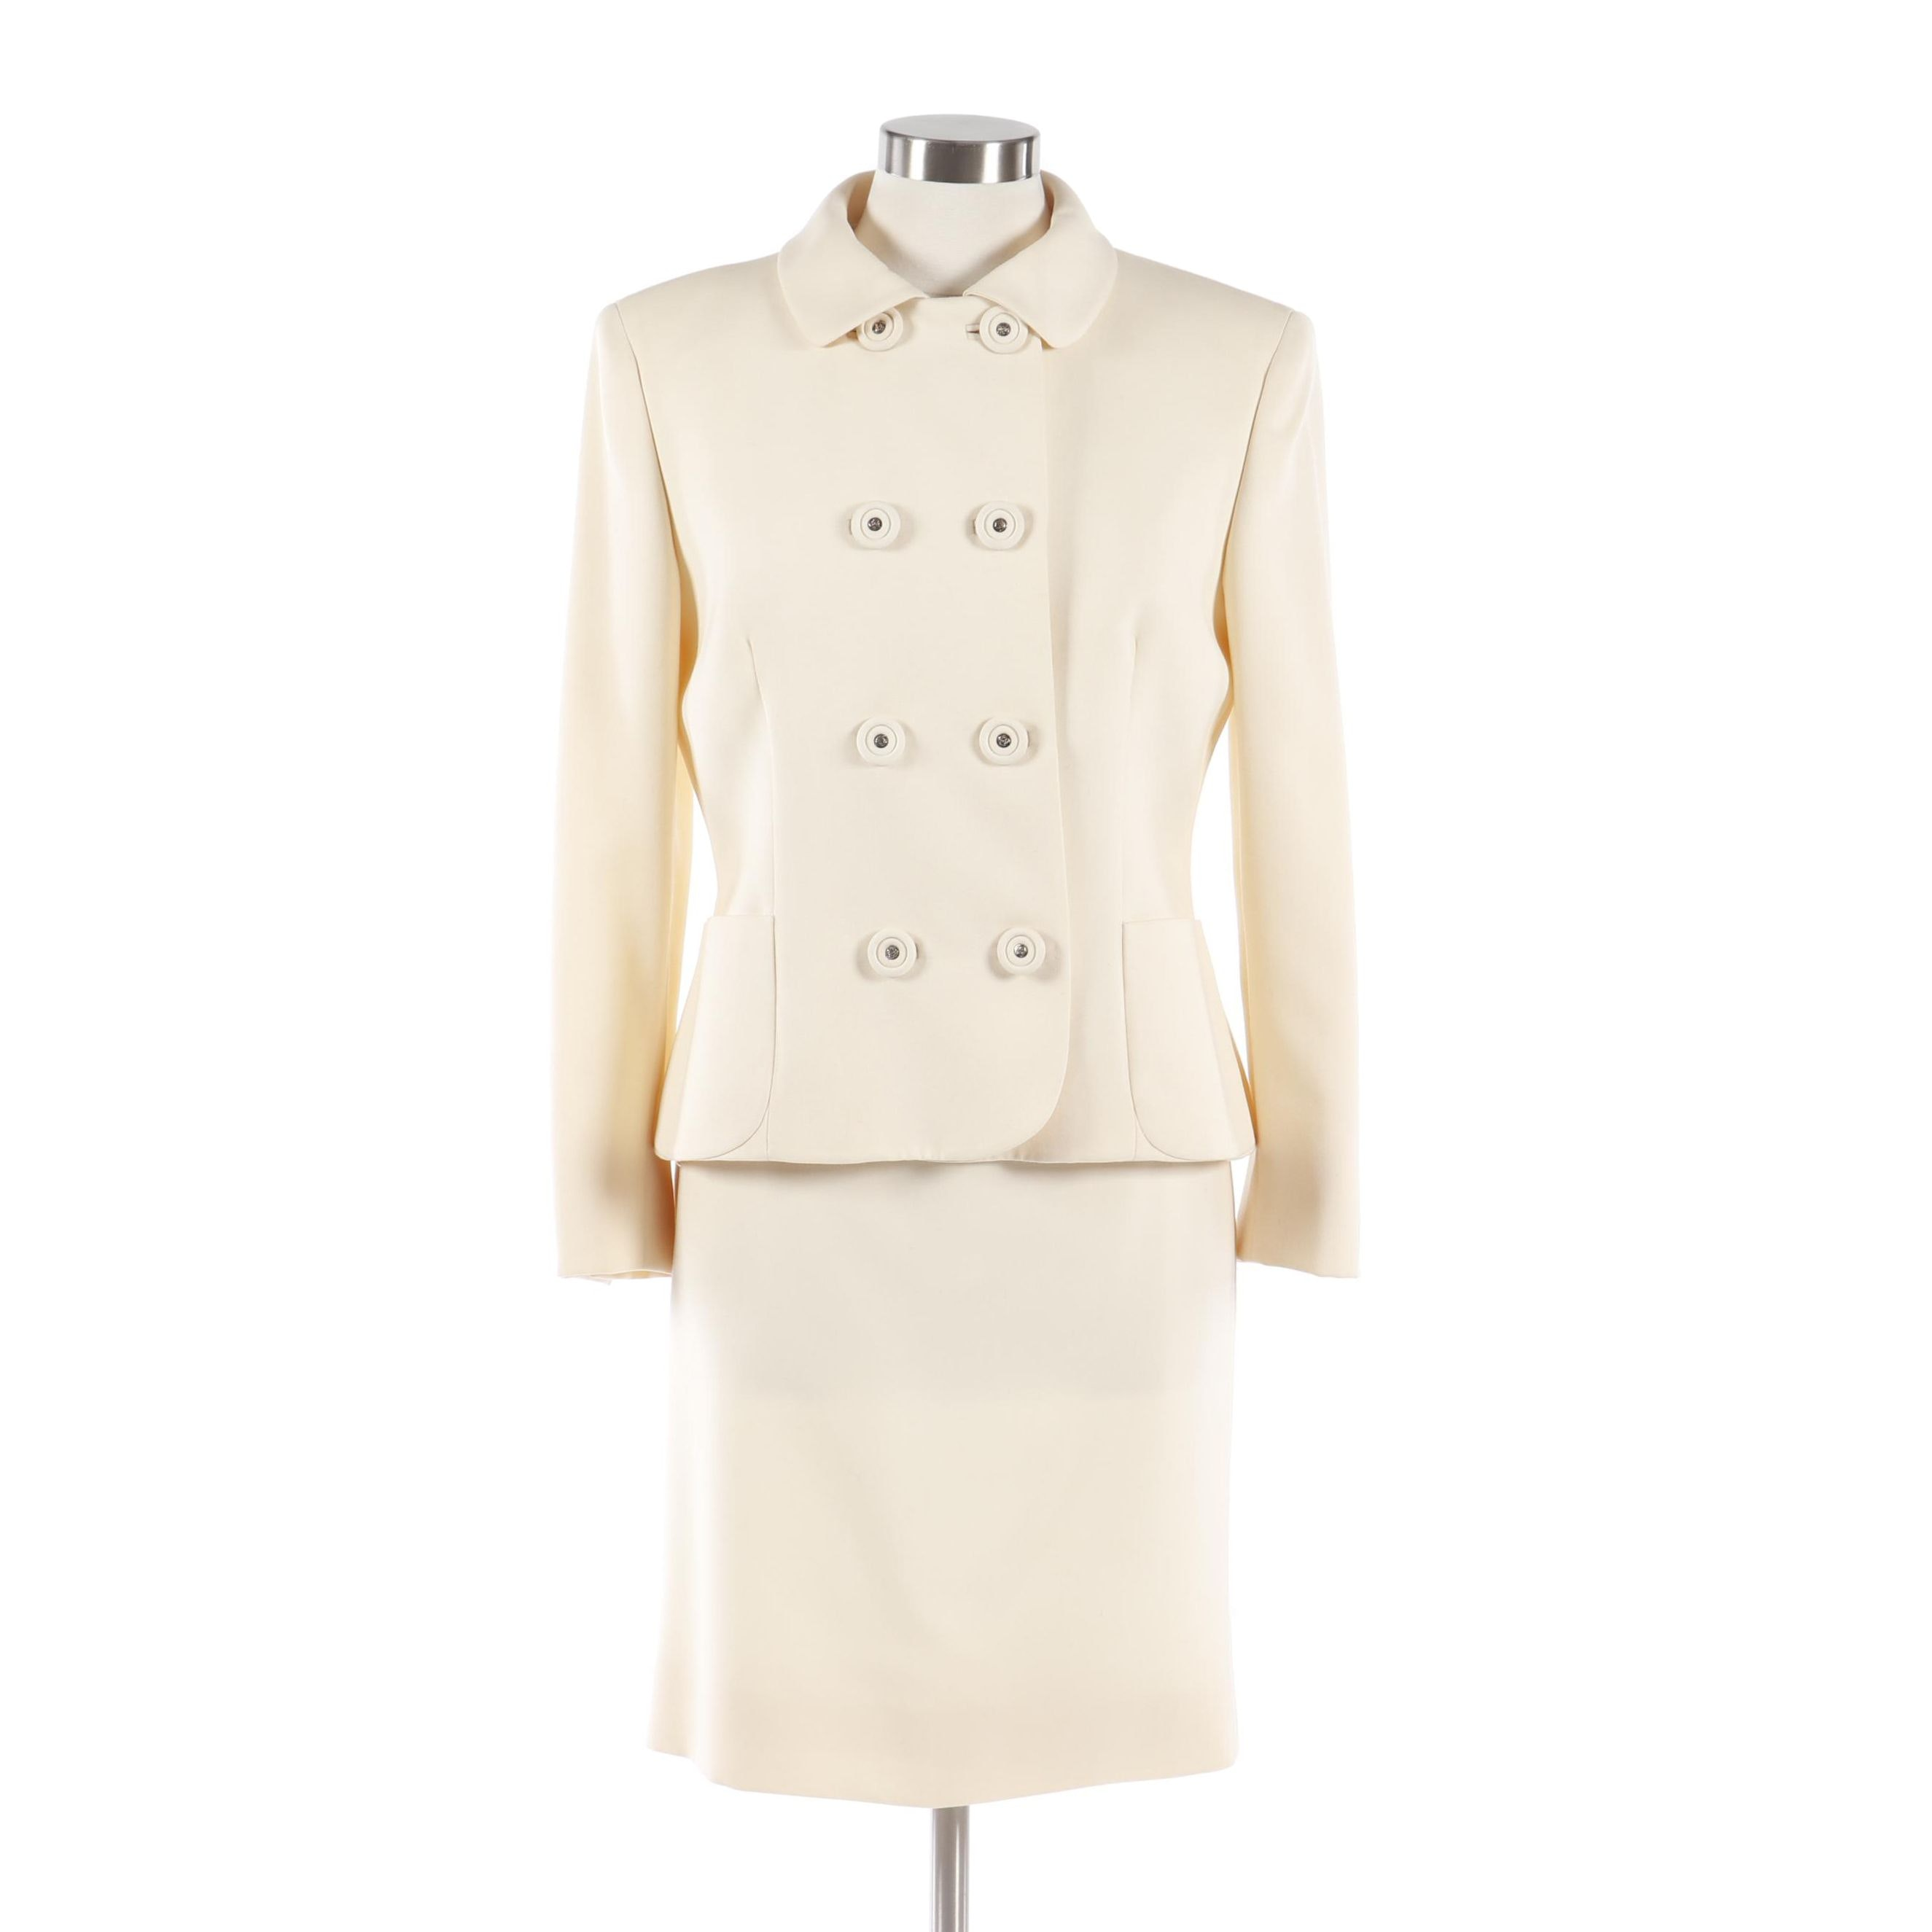 Women's Gianni Versace Couture Double-Breasted Ivory Wool Skirt Suit, Vintage